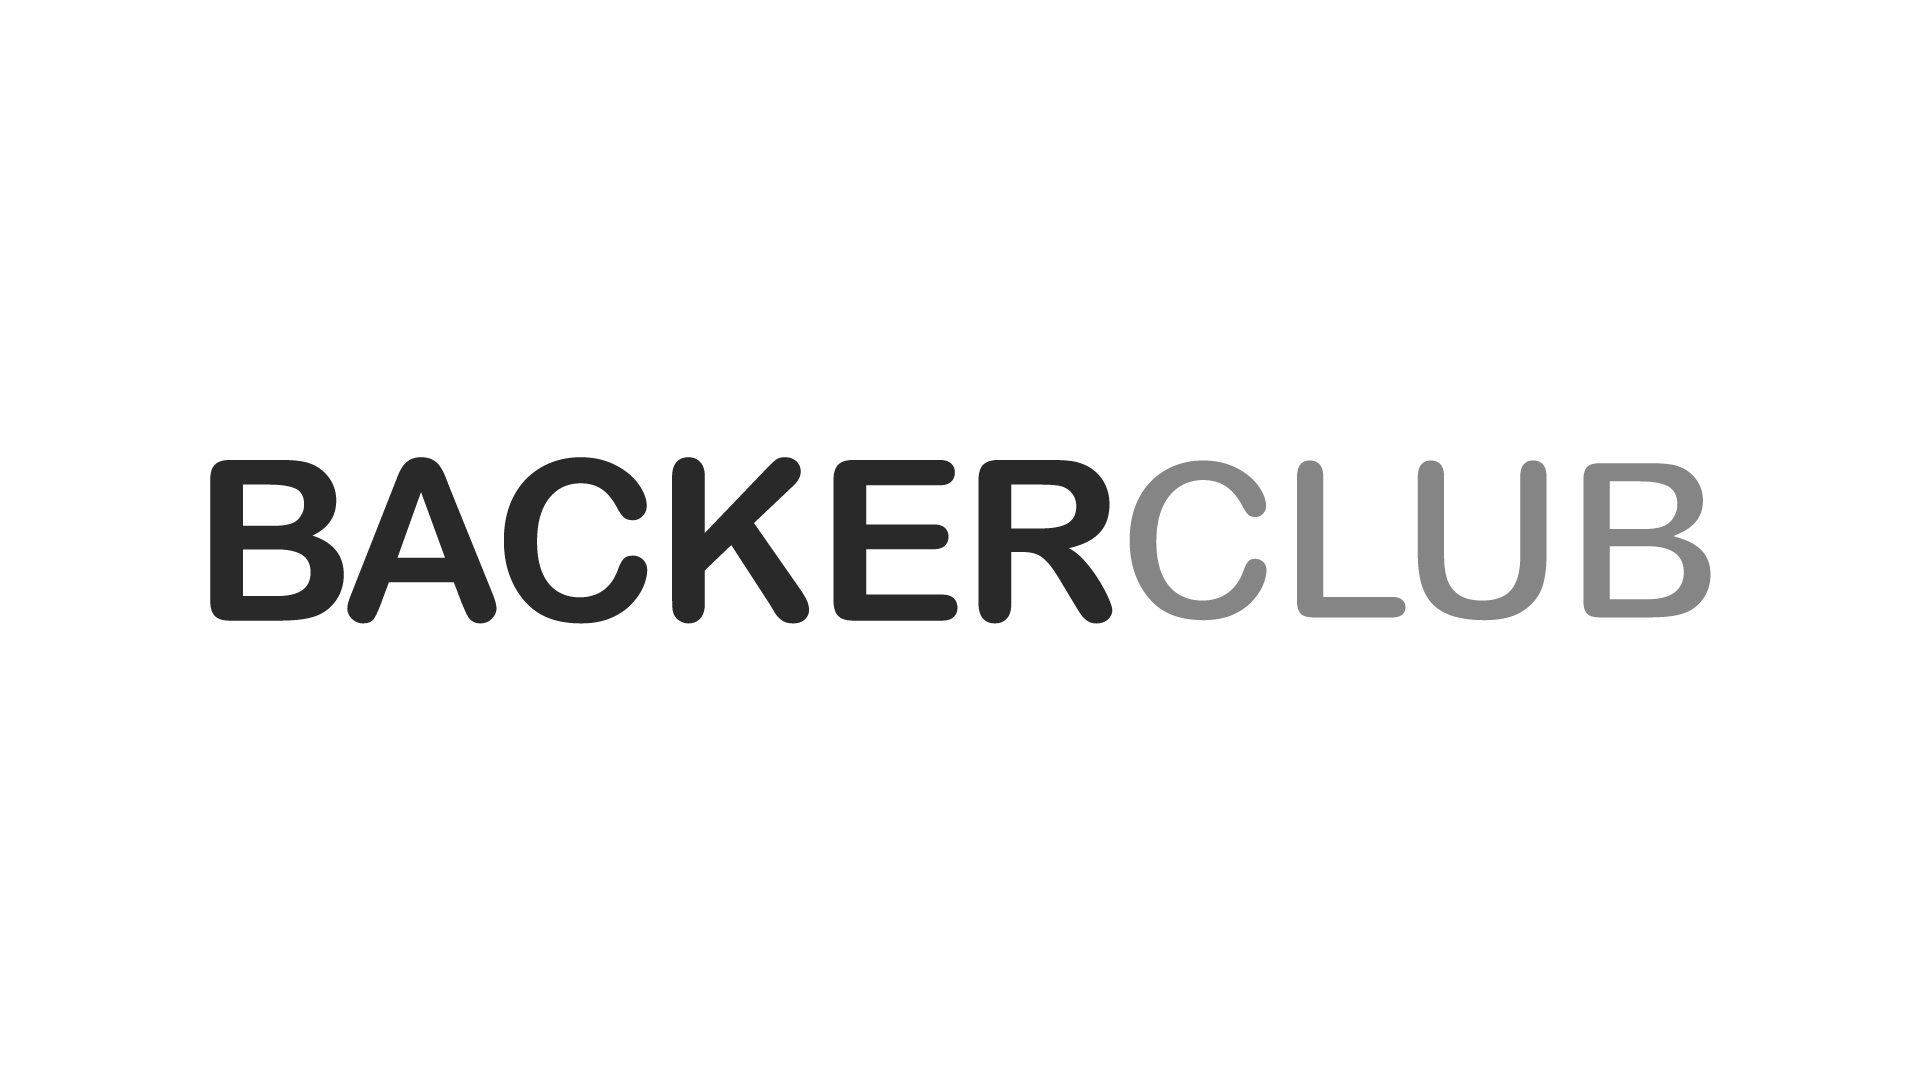 backerclub